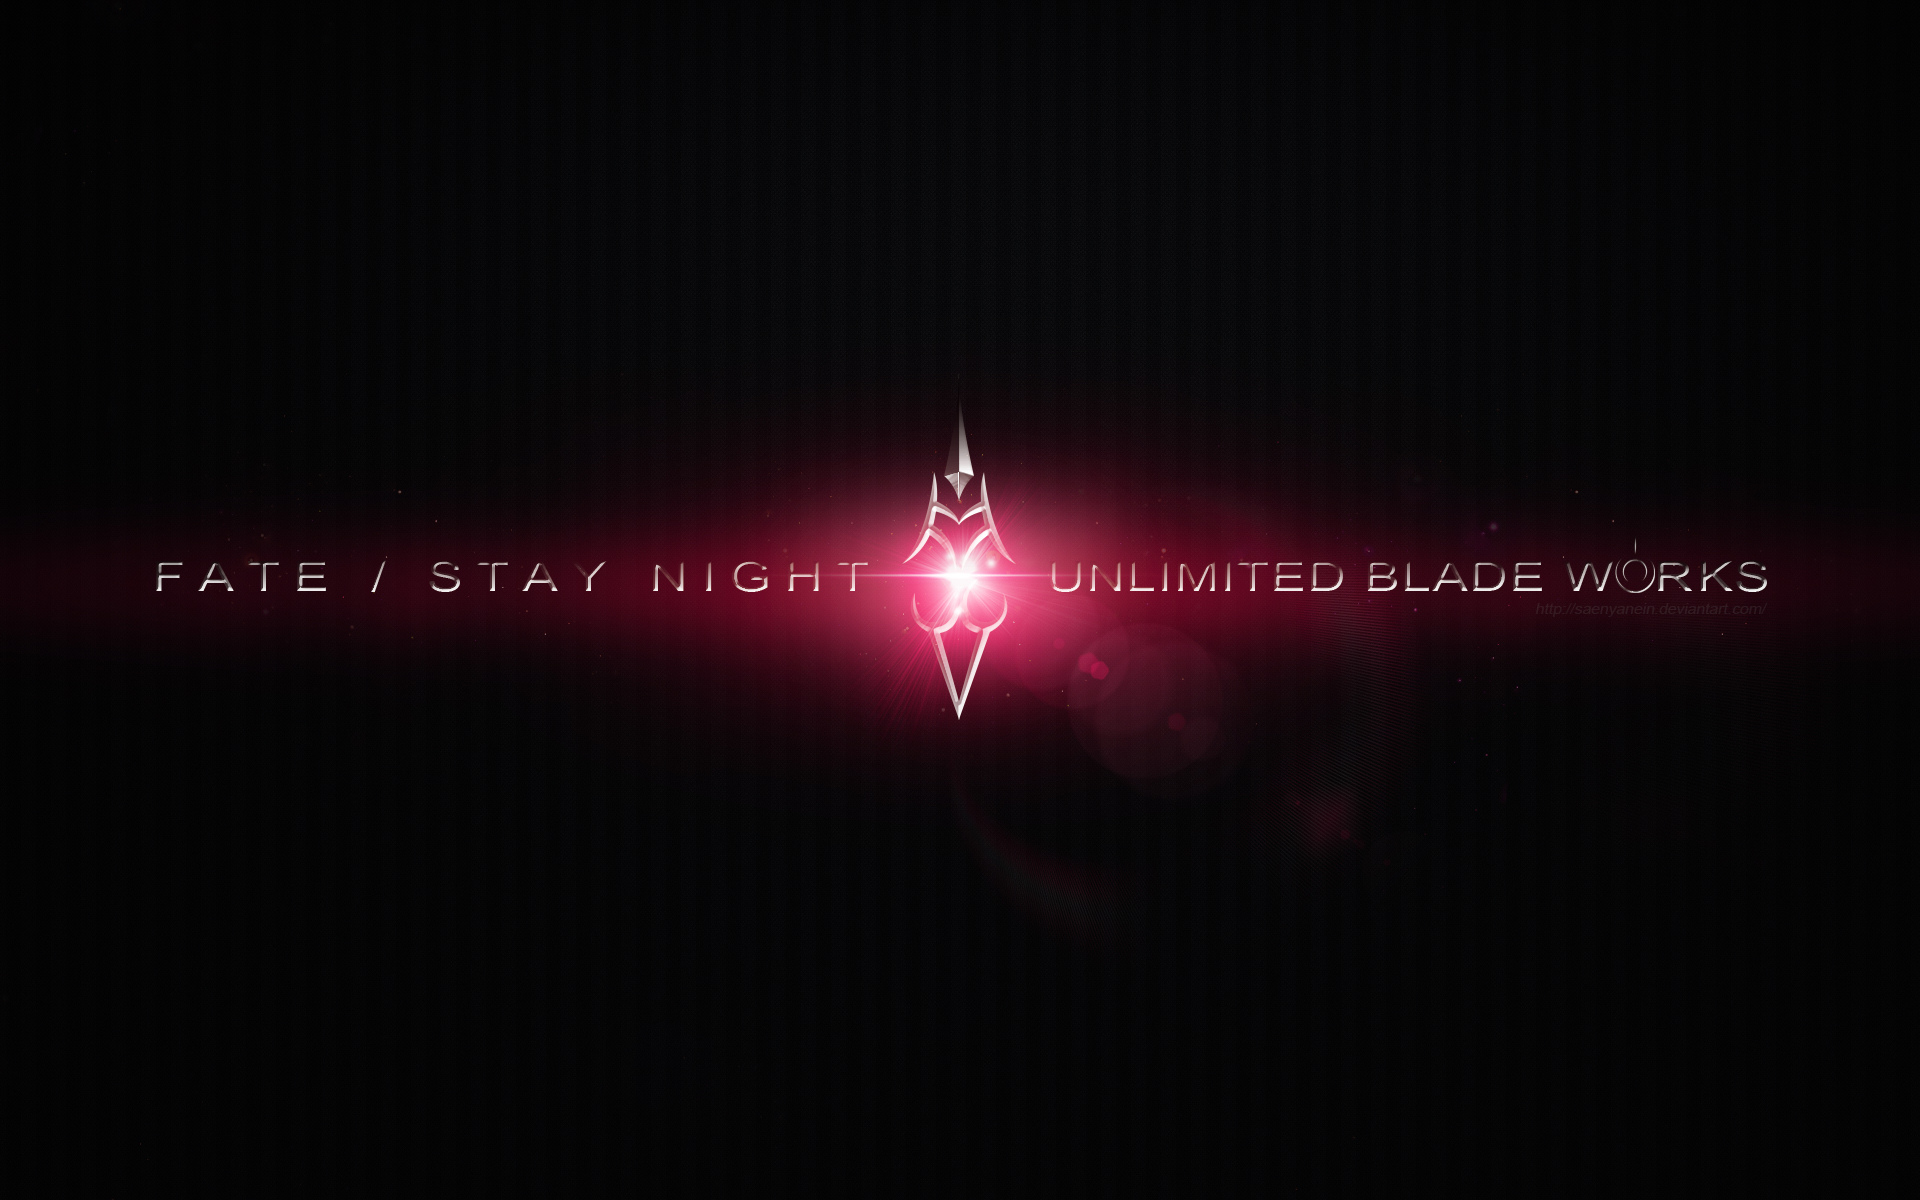 Fate Stay Night Unlimited Blade Works Wallpaper By Saenyanein On